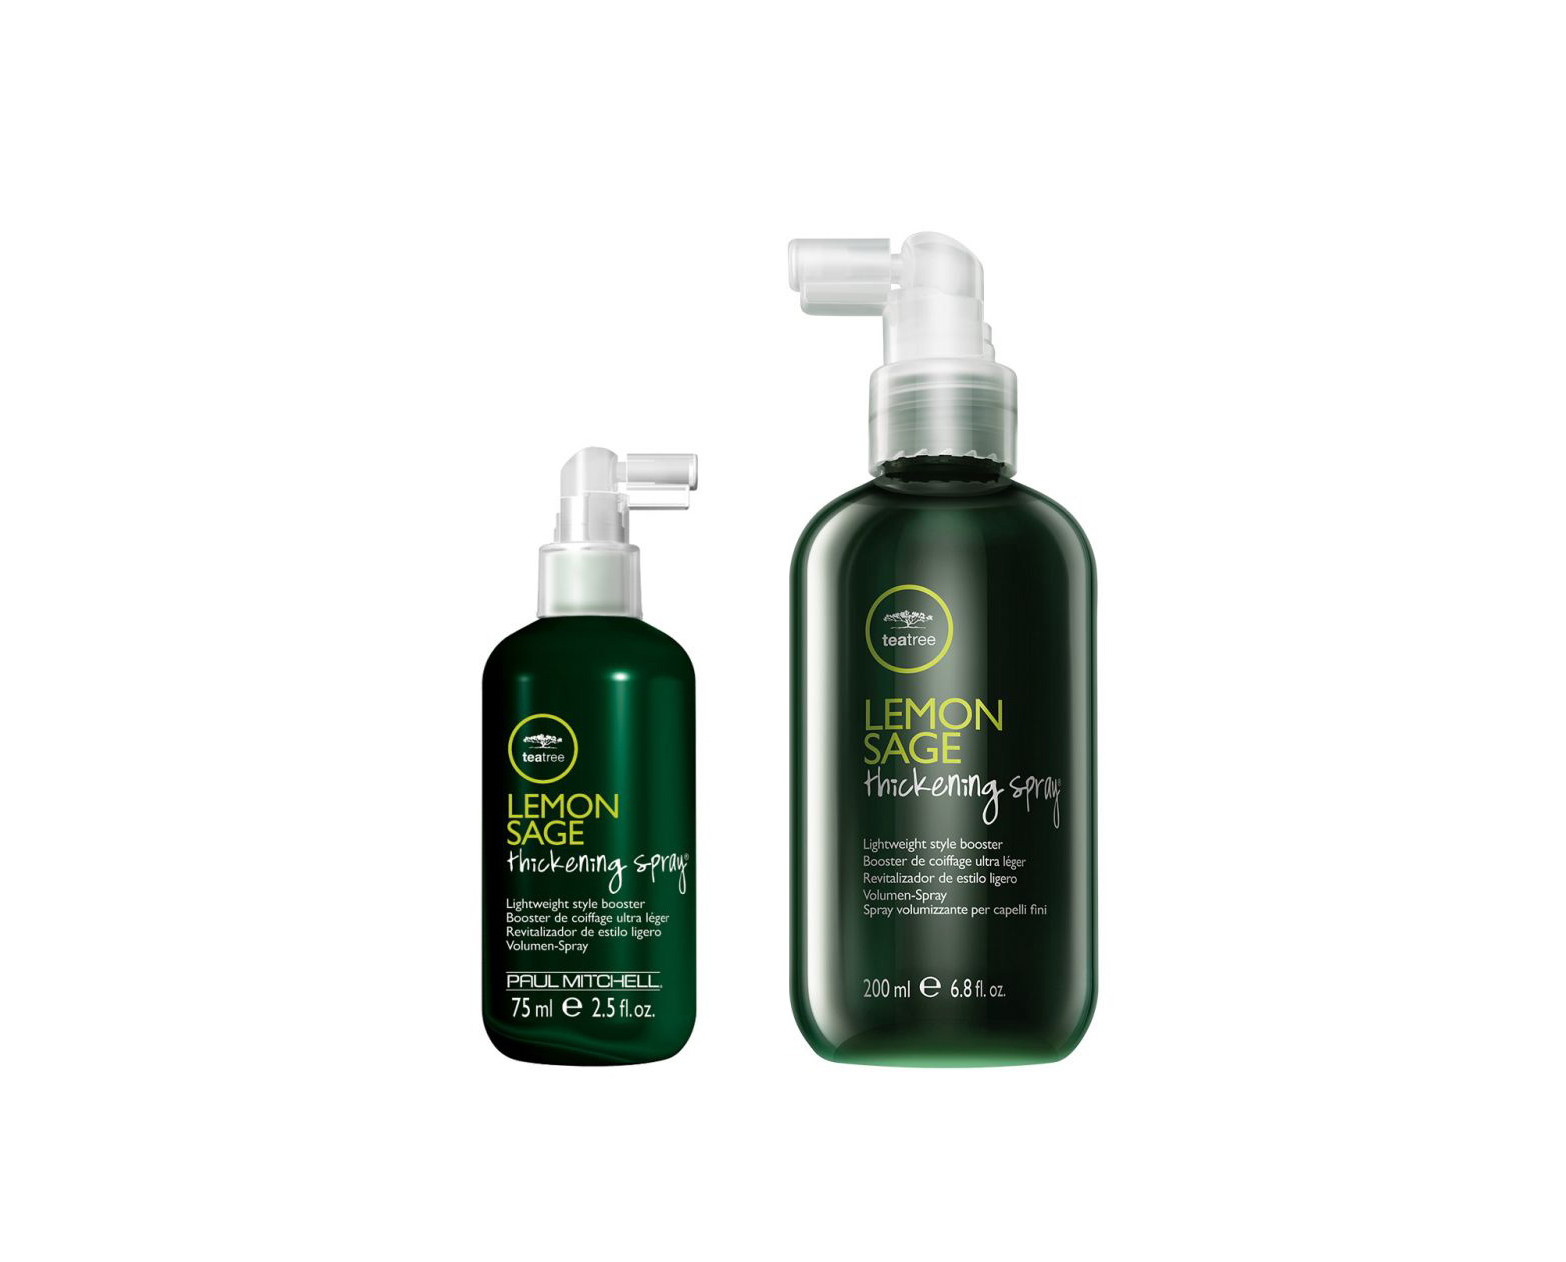 Paul Mitchell Tea Tree Lemon Sage Thickening Spray - bezoplachový objemový kondicionér v spreji